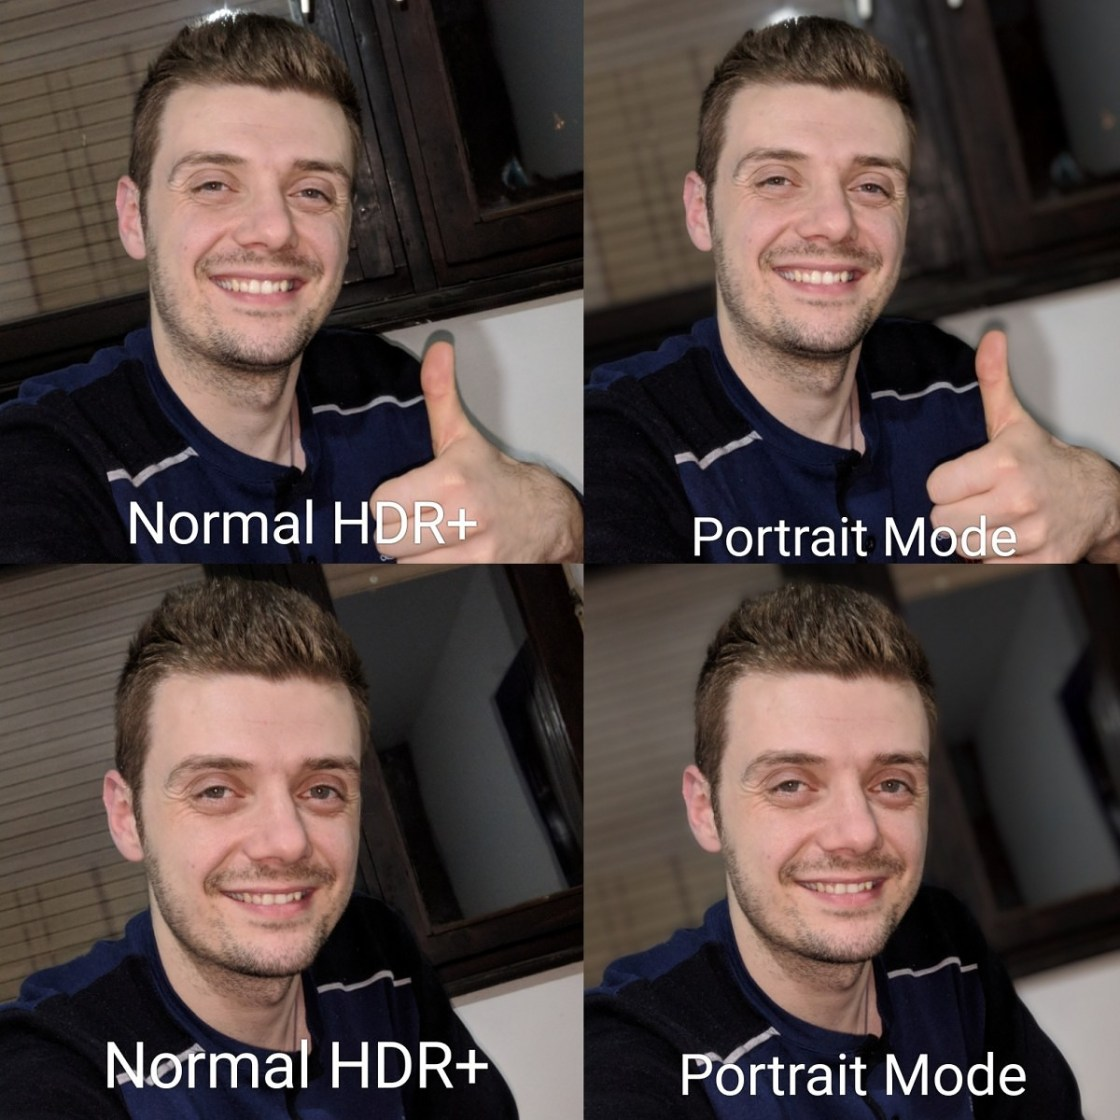 Pixel 2 Portrait Mode apk ported